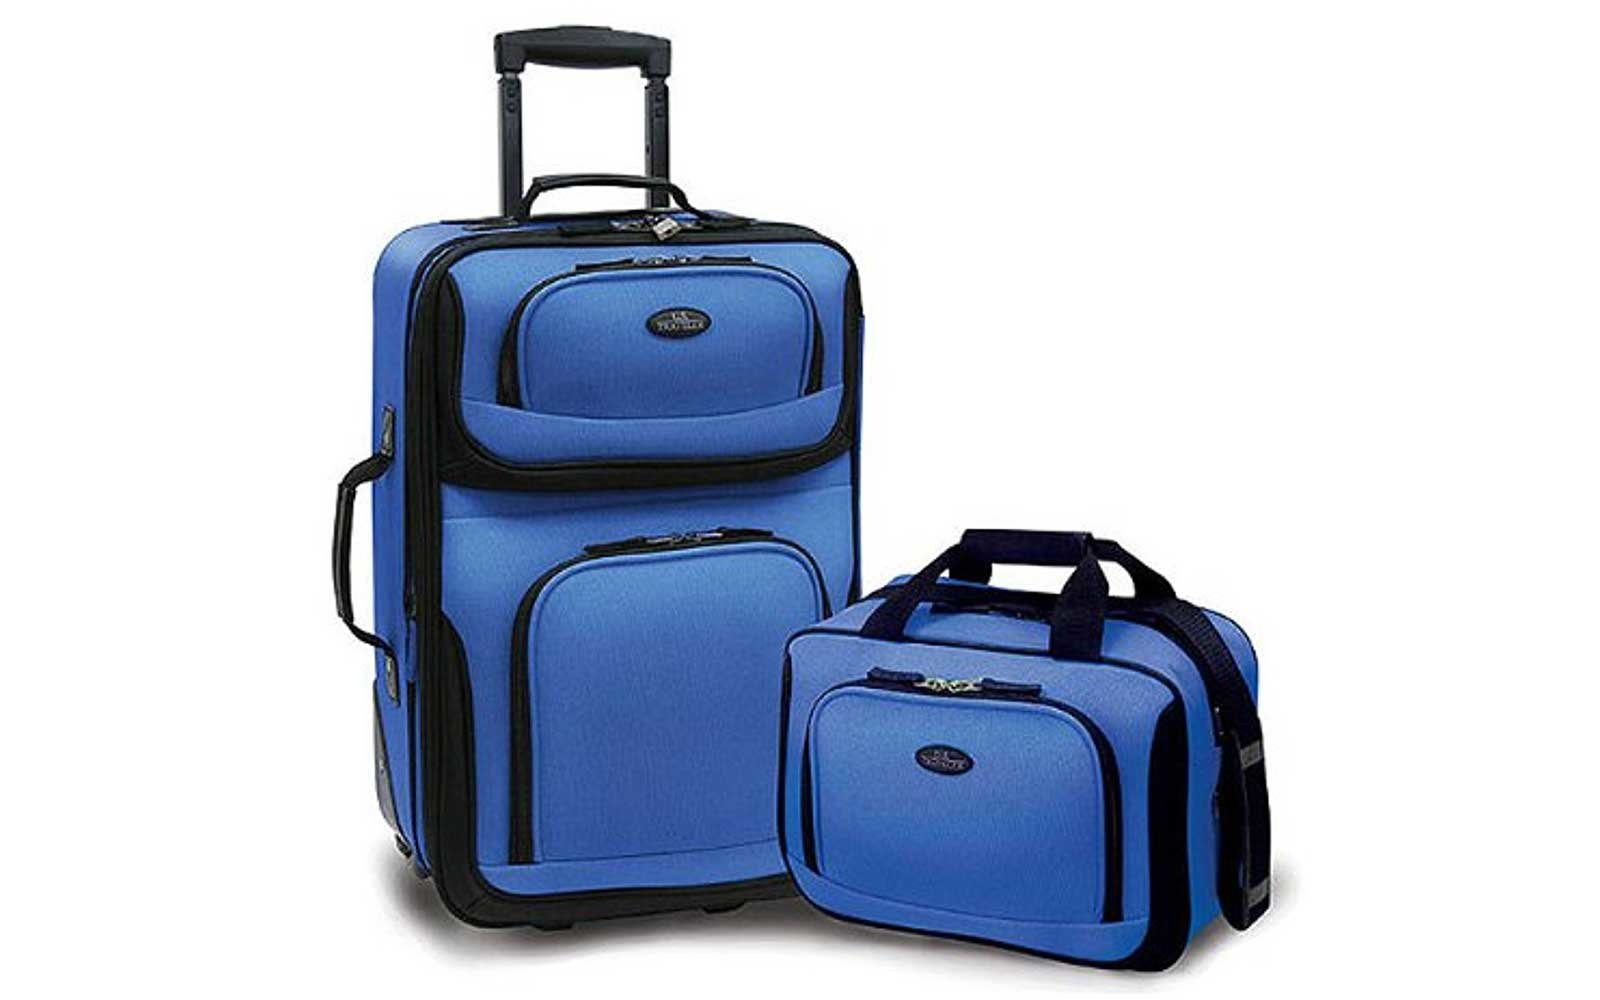 US Traveler luggage set